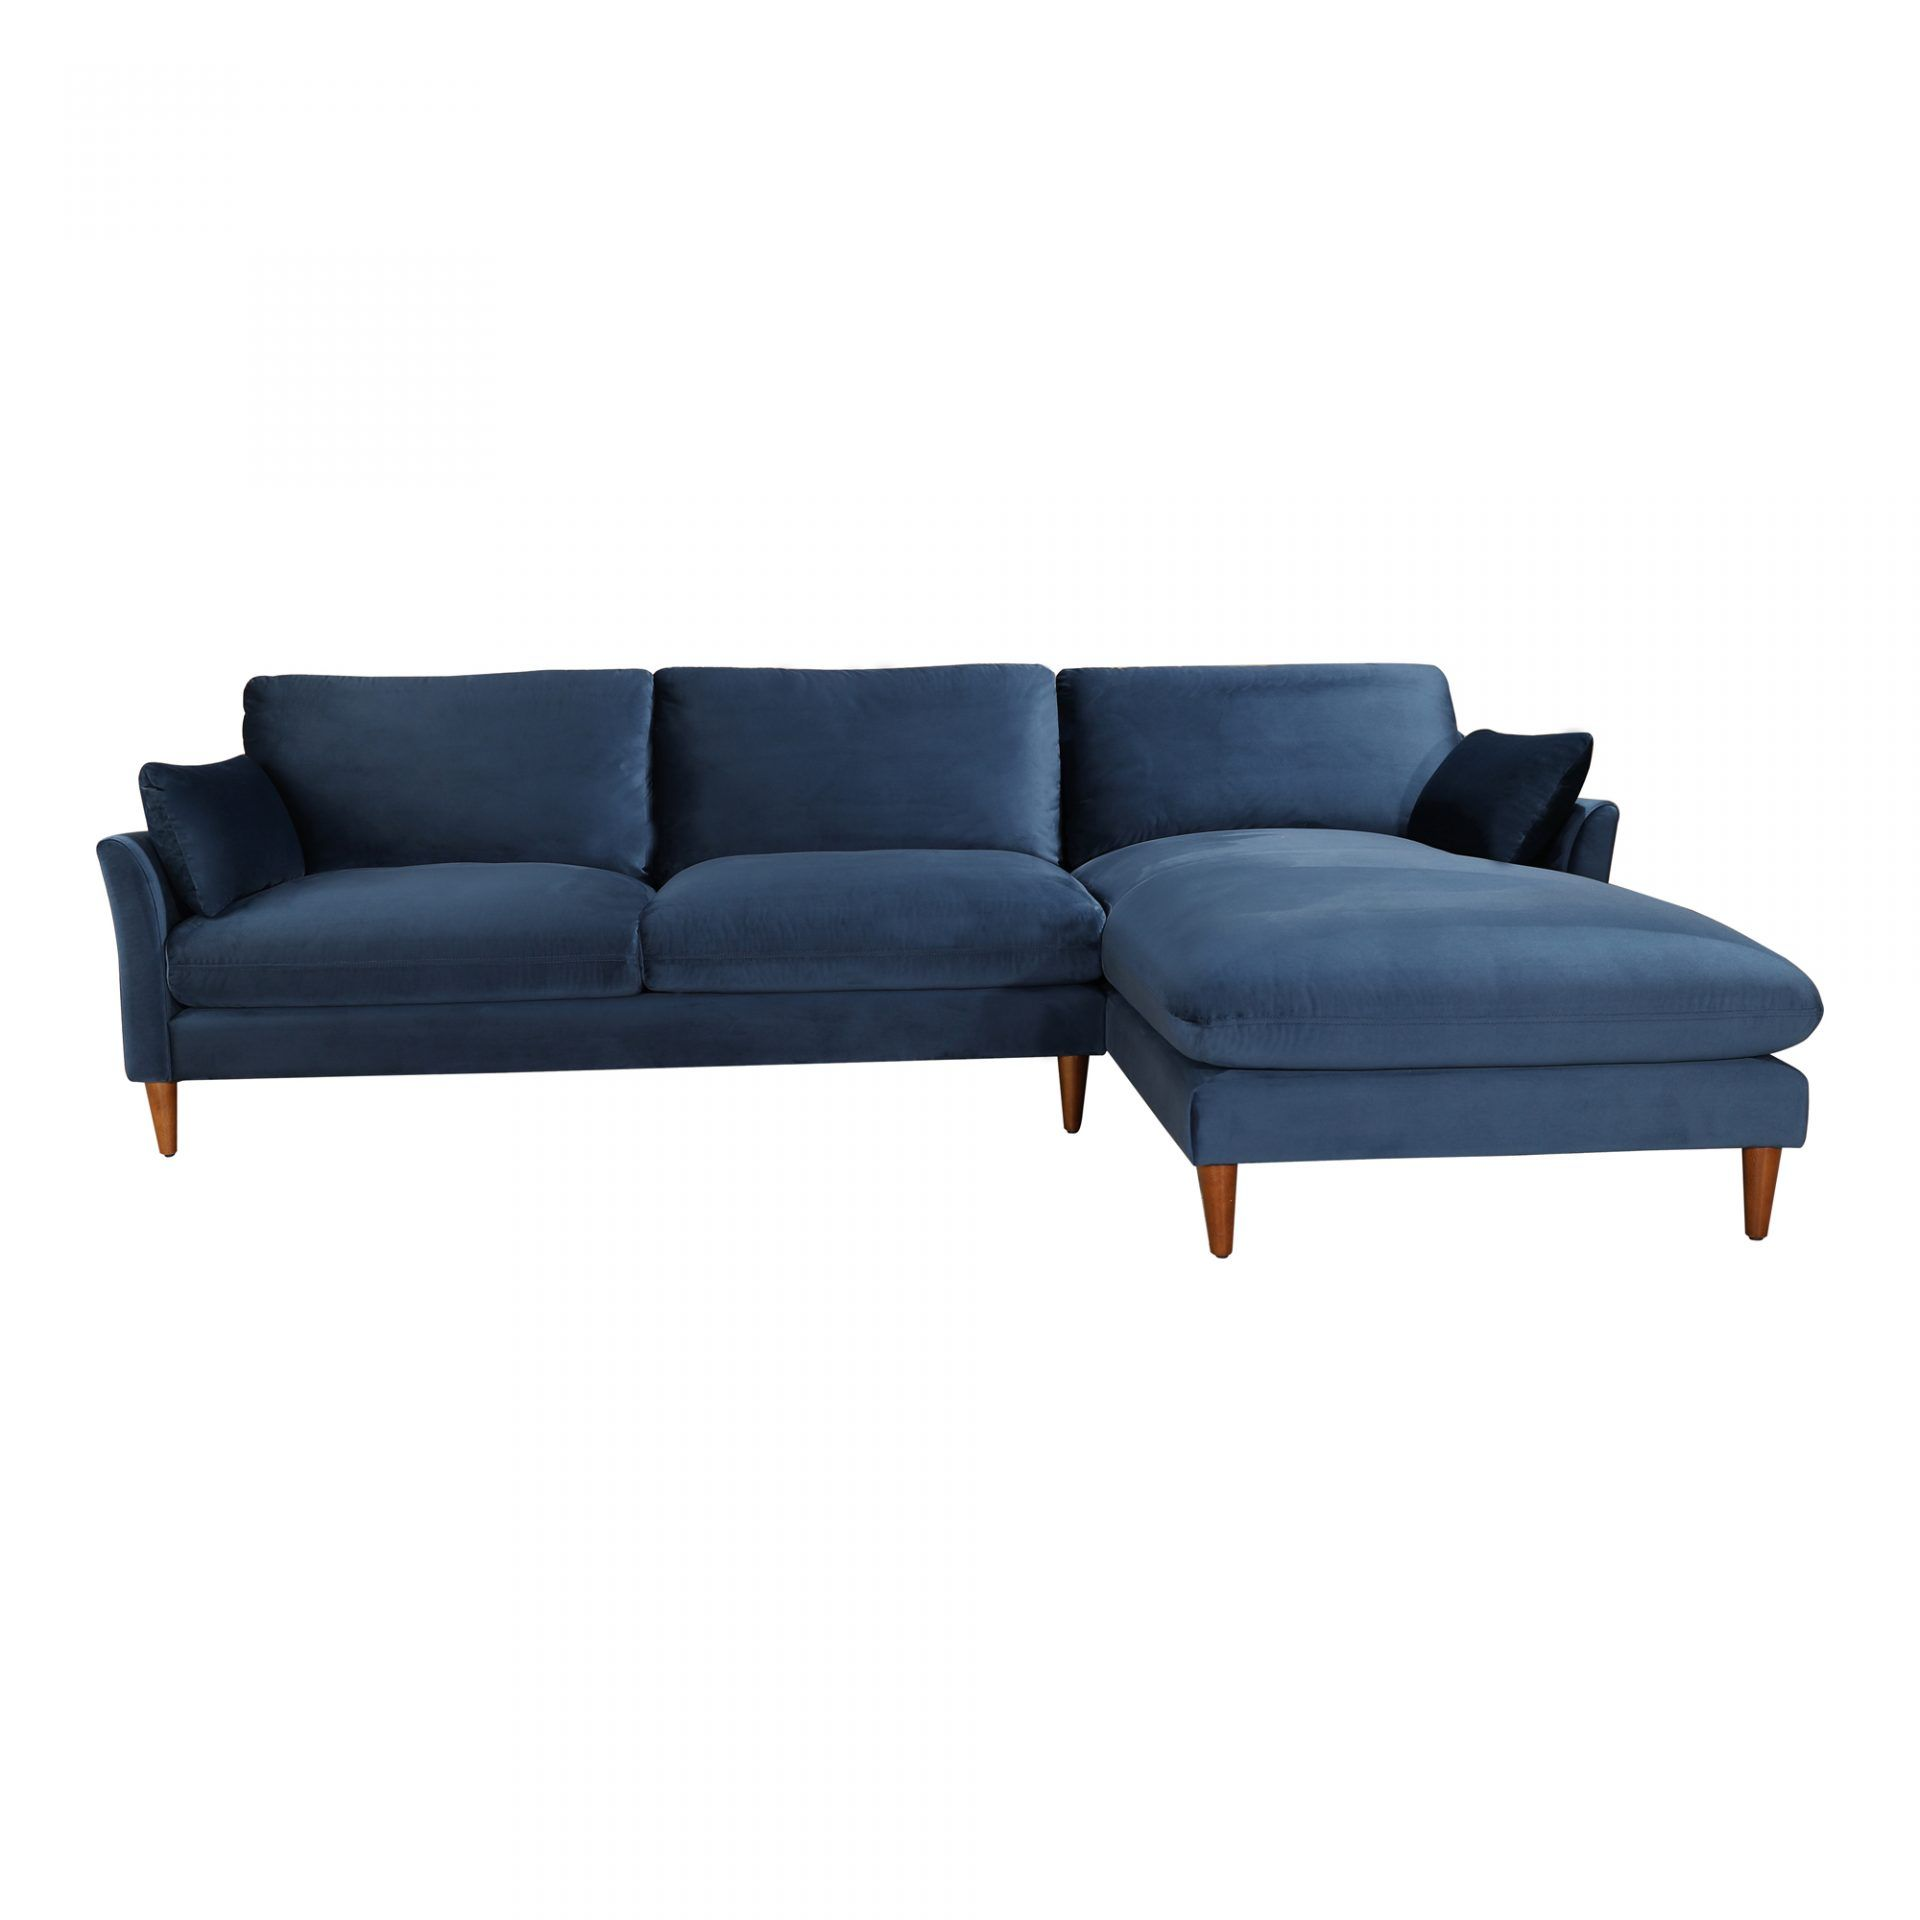 Suma Sectional Right Blue Velvet Products Moe S Canada Modern Leather Sectional Sofas Moe S Home Collection 2 Piece Sectional Sofa